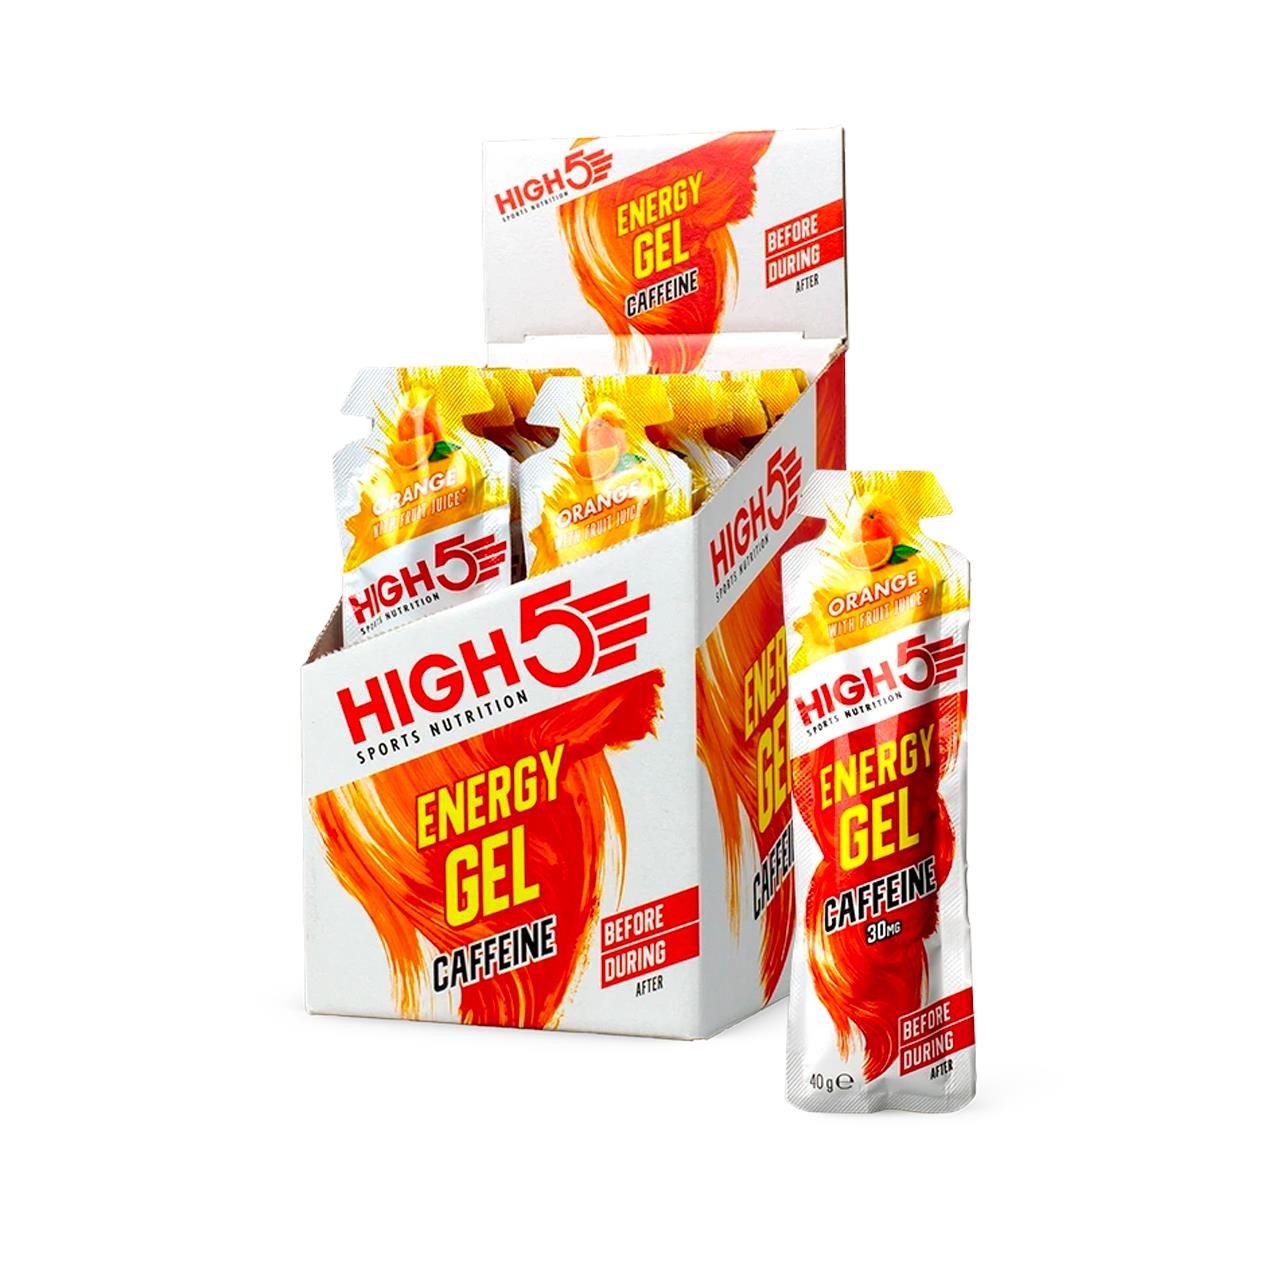 High5 Energy Gel Caffeine, 20 Pack (Orange)